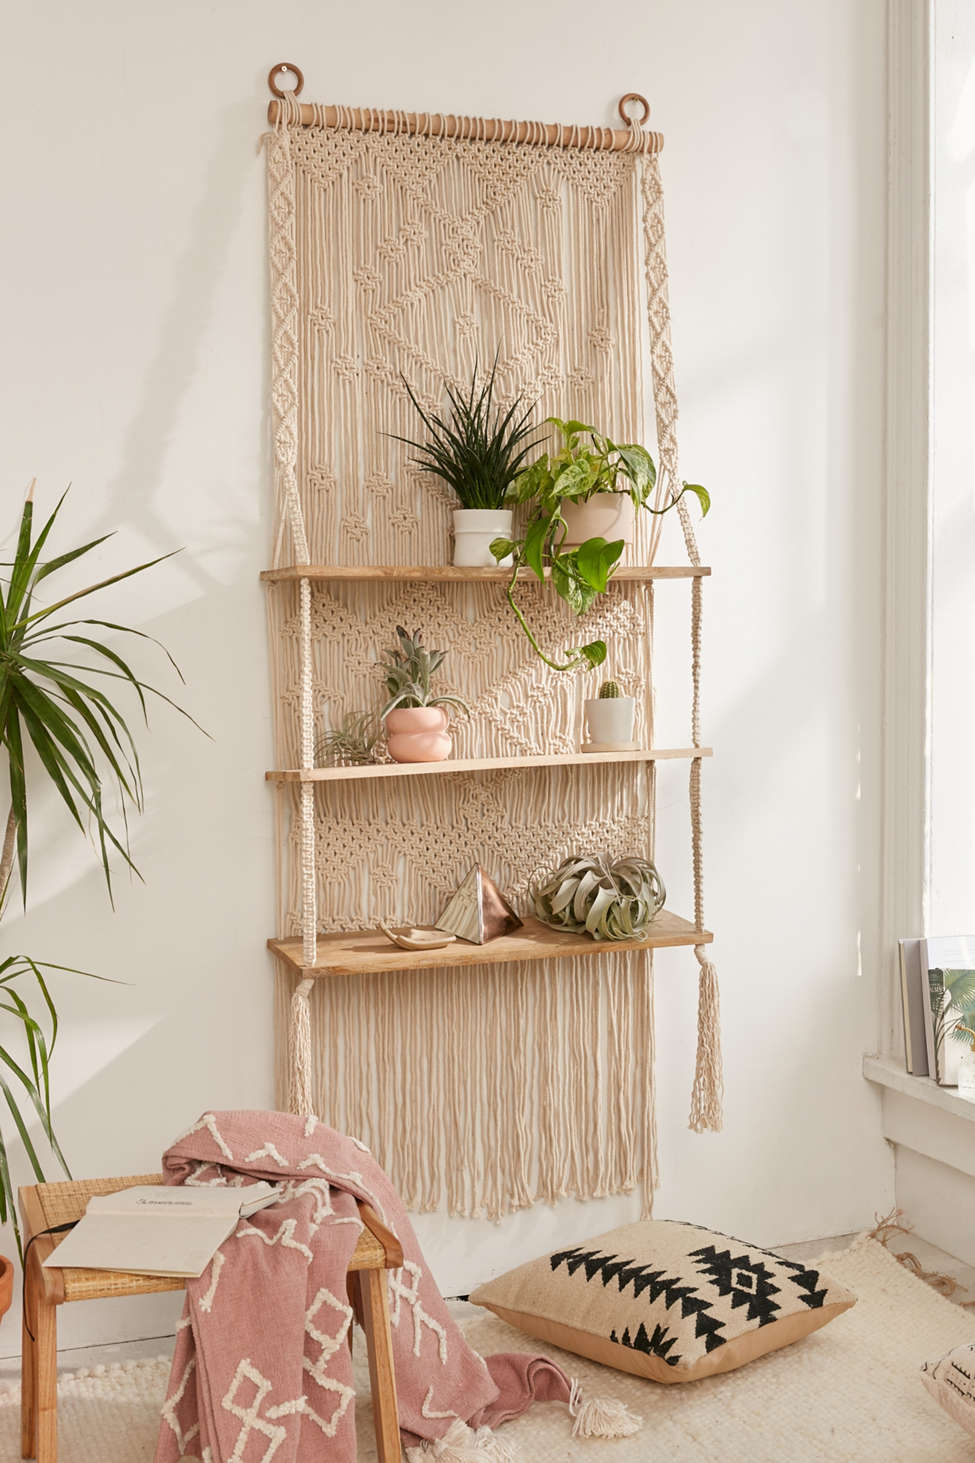 Slide View: 1: Macramé Hanging Shelf